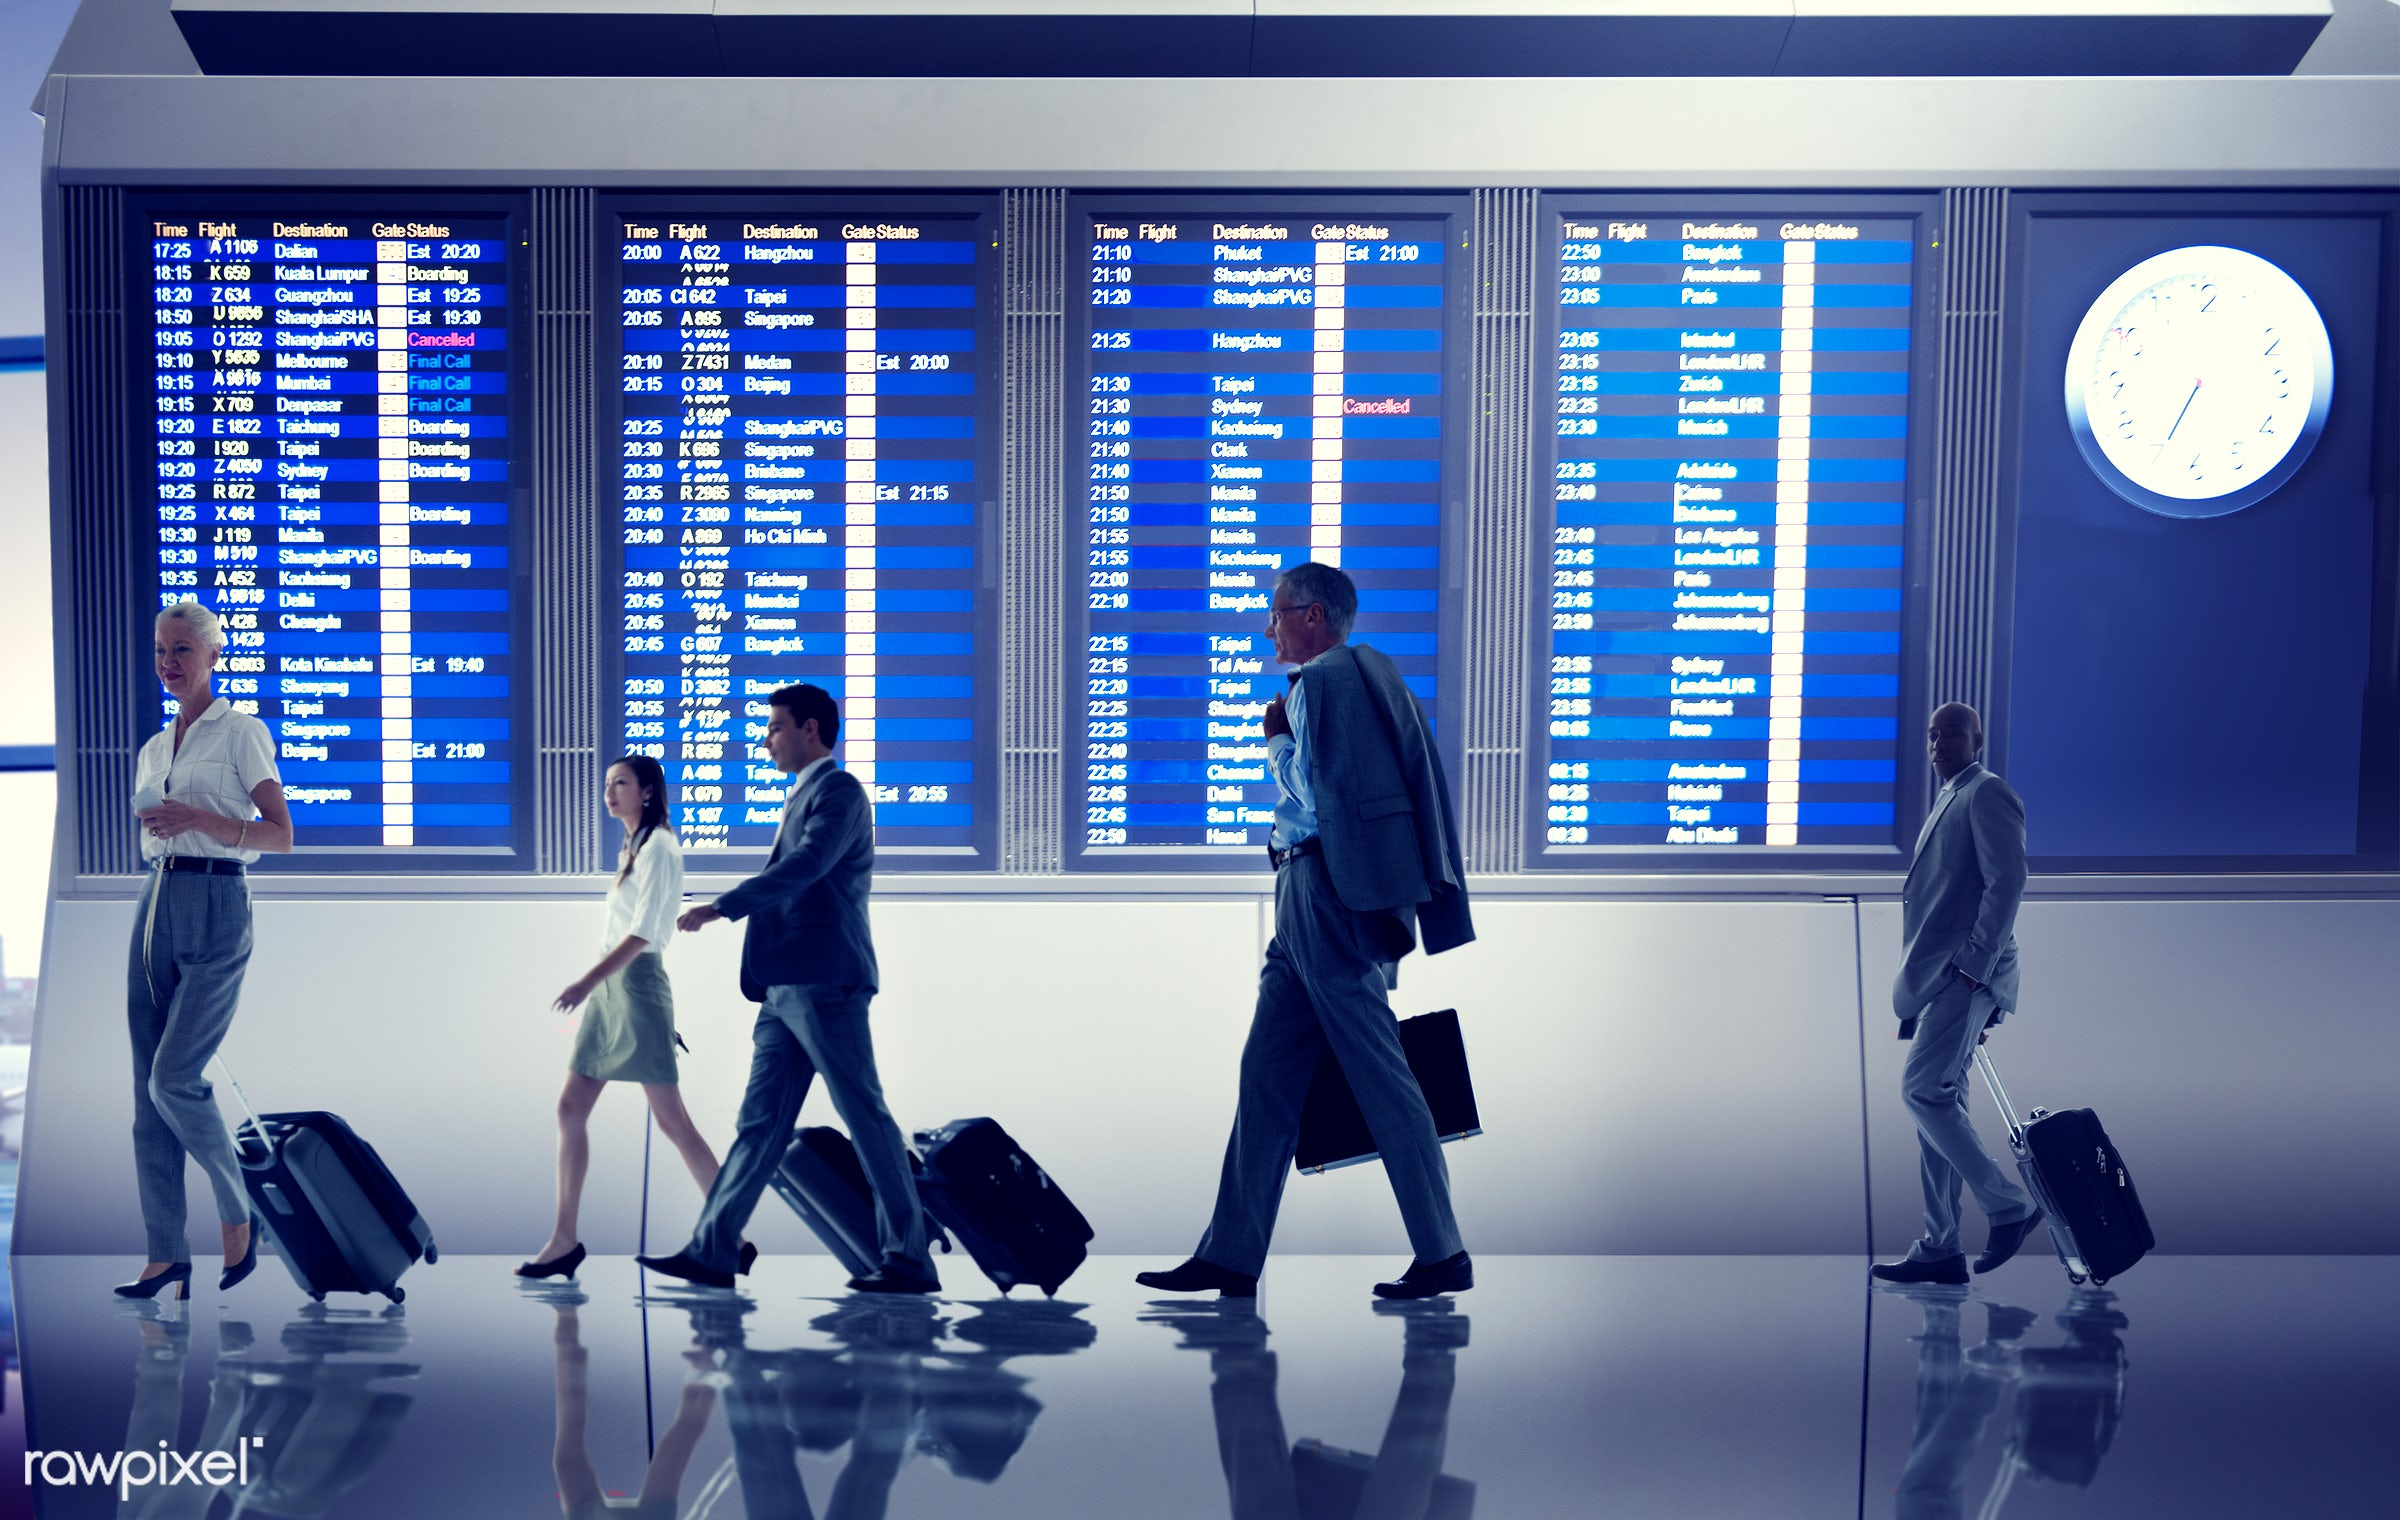 corporate, businessmen, business people, business travel, travel, traveling, airport, flight, terminal, gate, airline